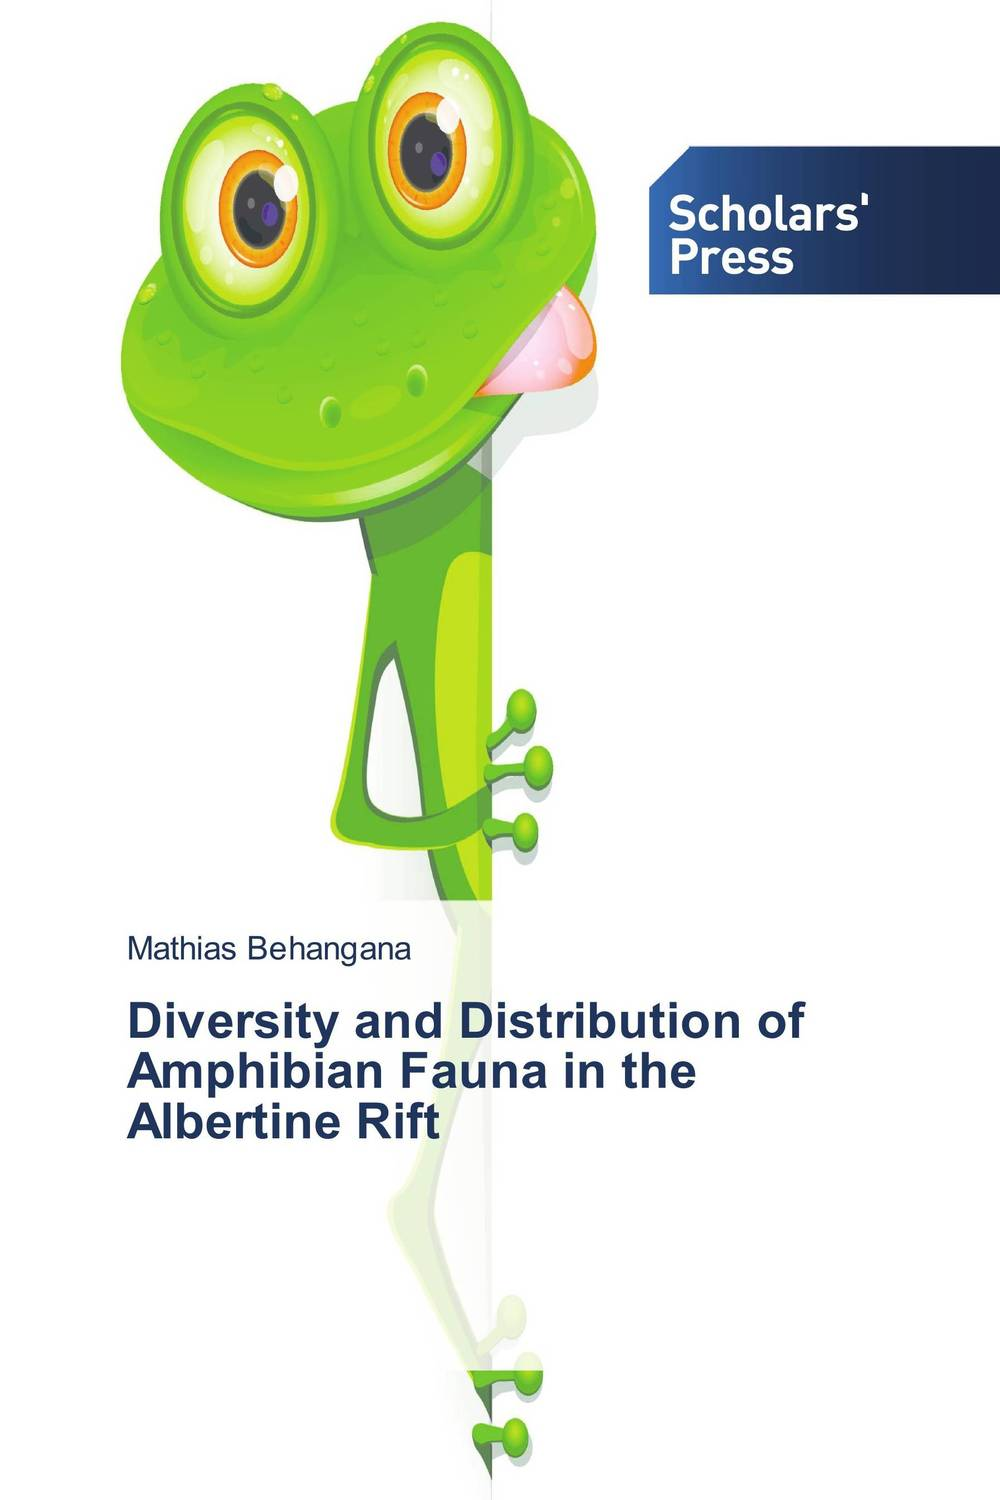 Diversity and Distribution of Amphibian Fauna in the Albertine Rift on the distribution of information structures and focal points